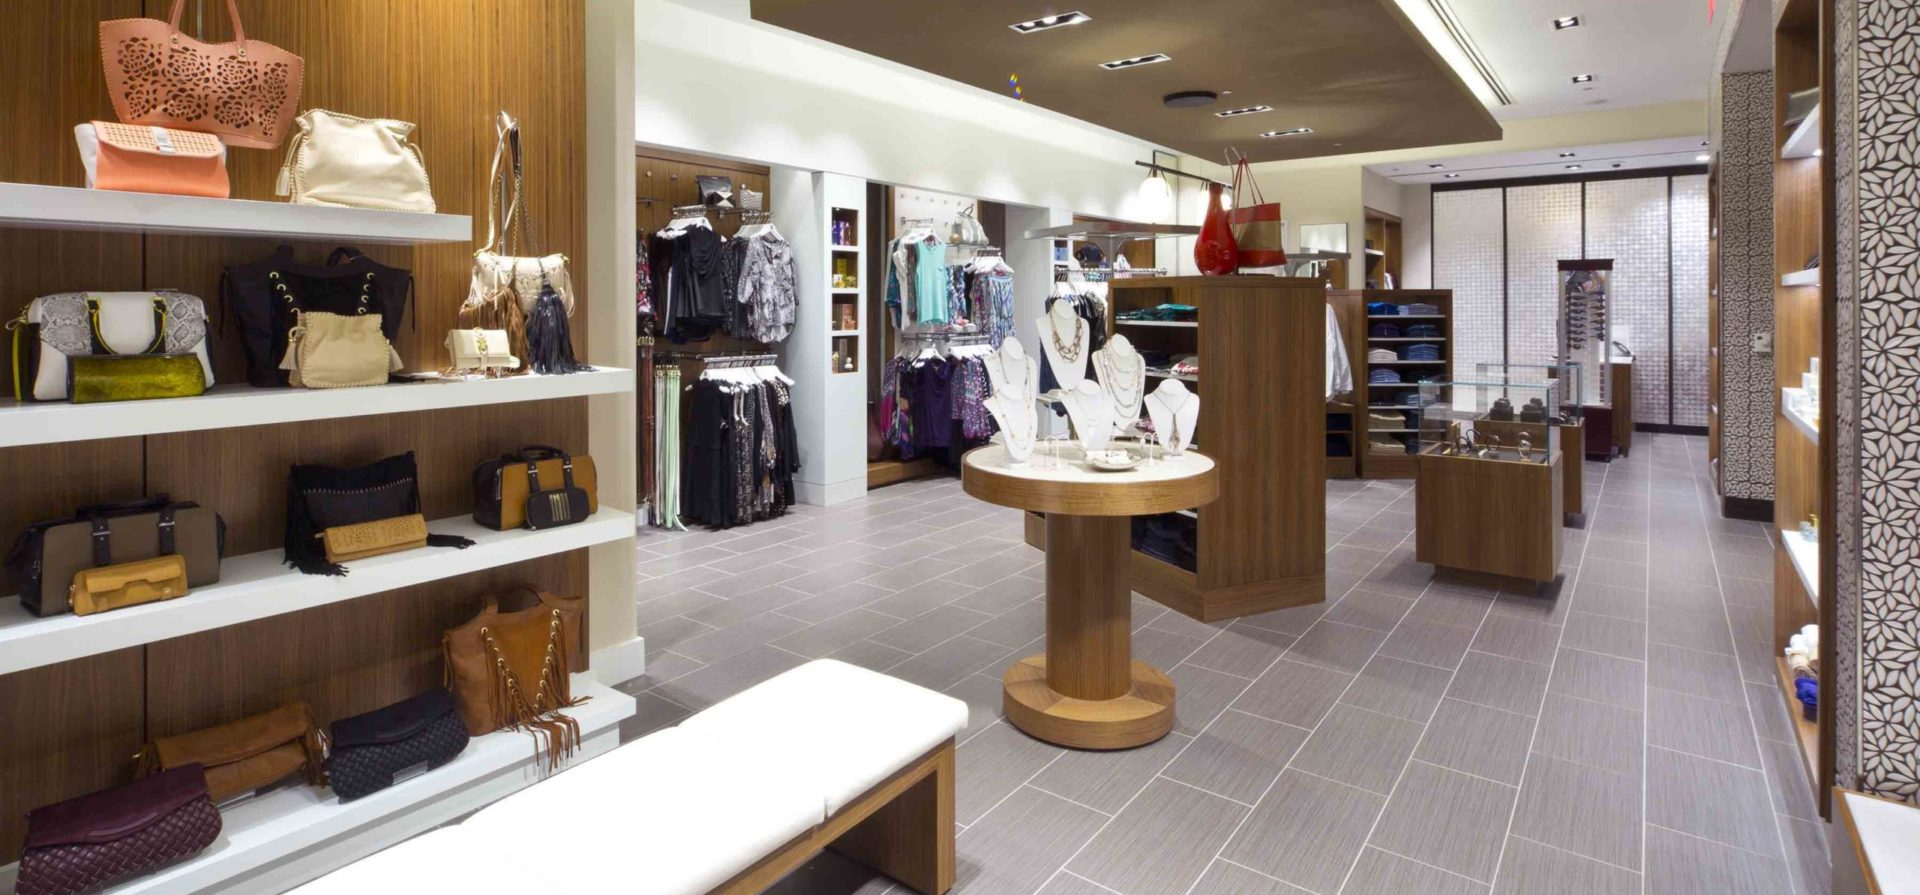 Golden Nugget Retail Stores: Style & Trend